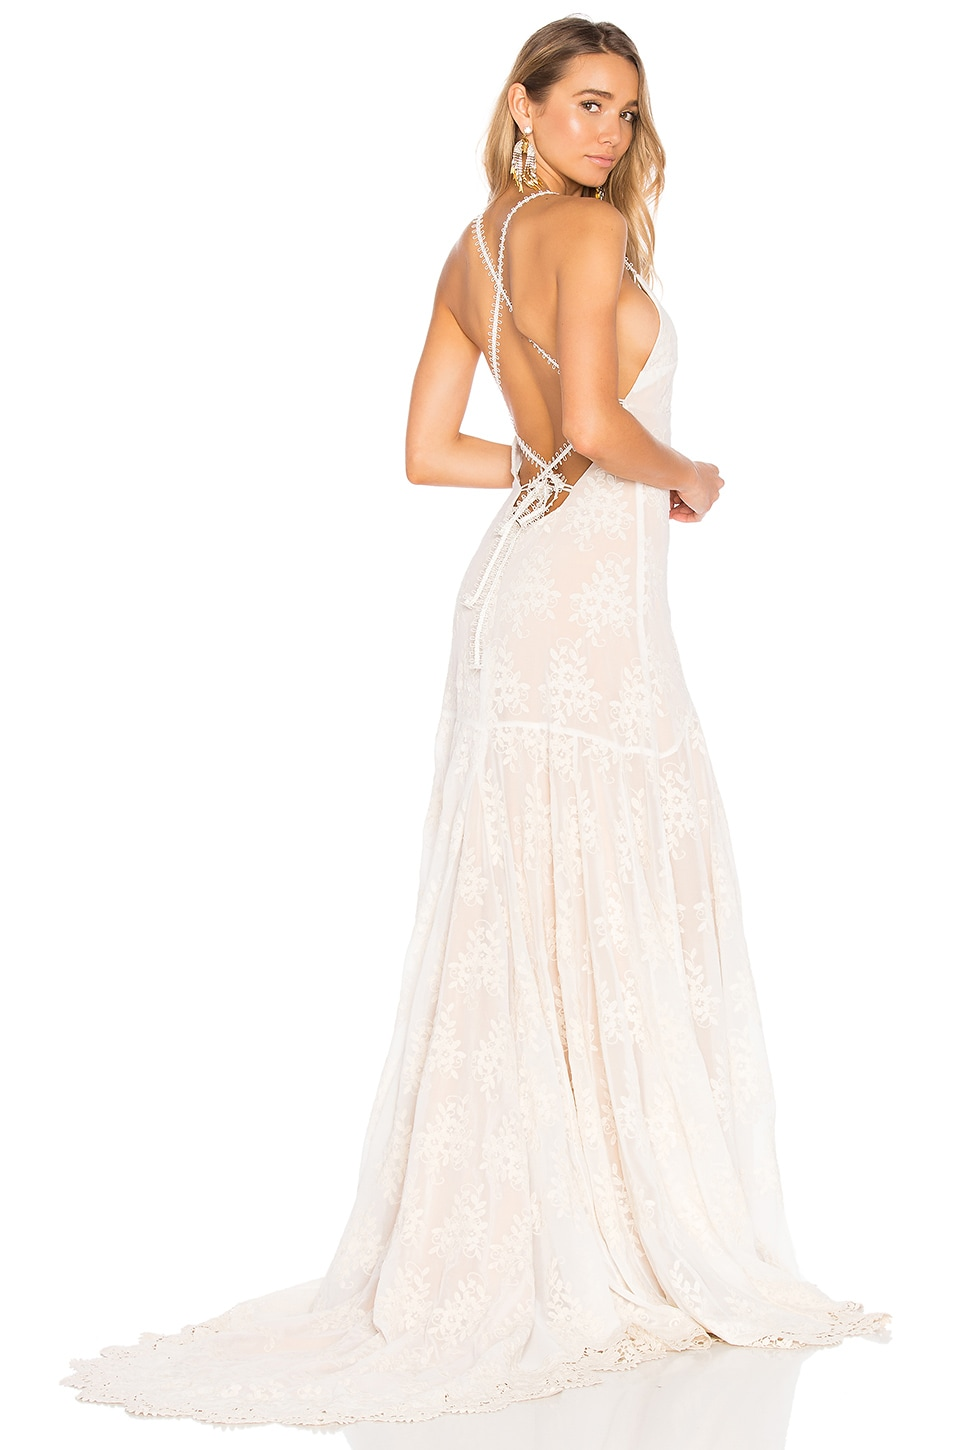 x REVOLVE Shane Gown by daughters of simone